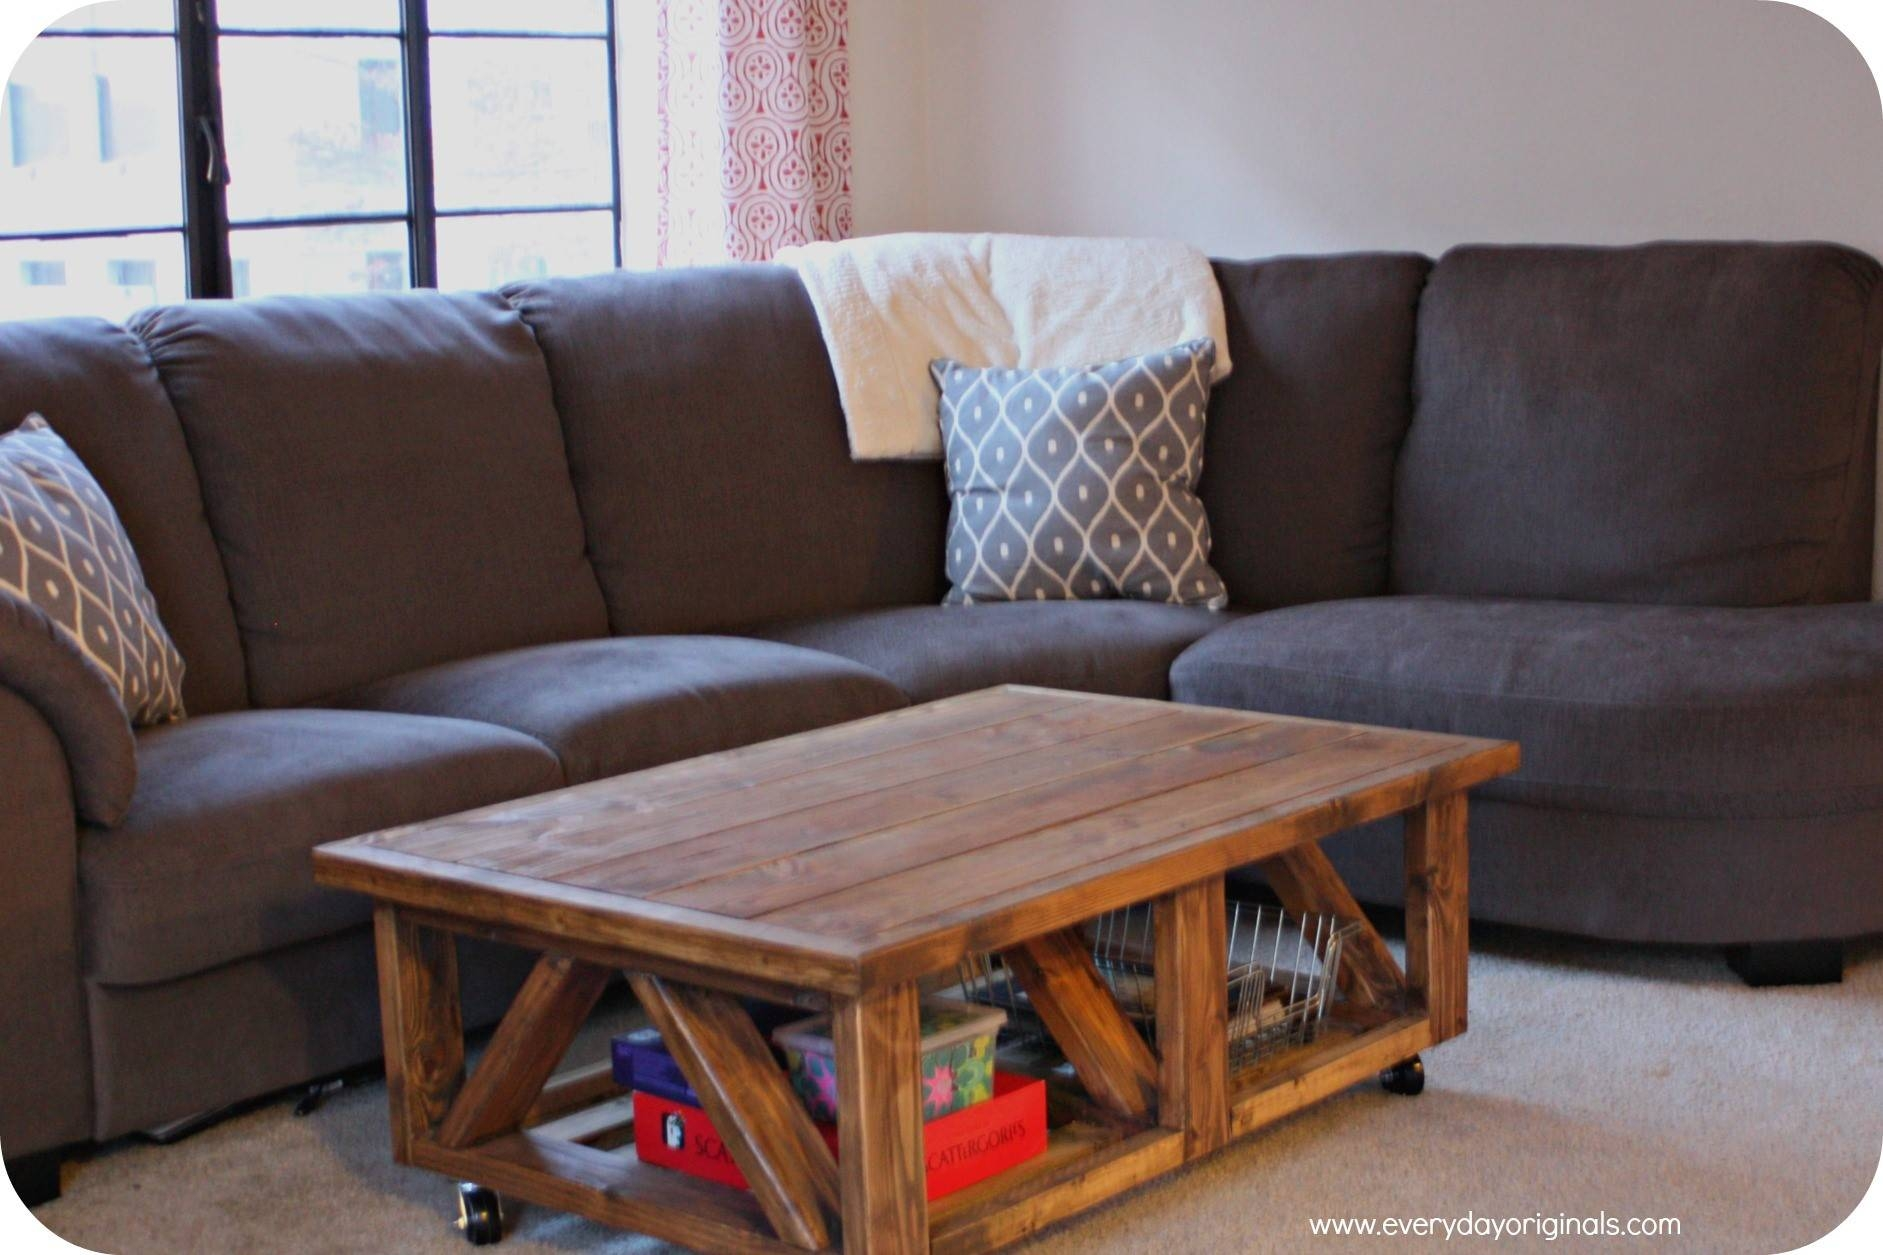 Furniture. Diy Rustic Coffee Table Ideas: Brown Rectangle Wood Diy throughout Rustic Wood Diy Coffee Tables (Image 14 of 30)